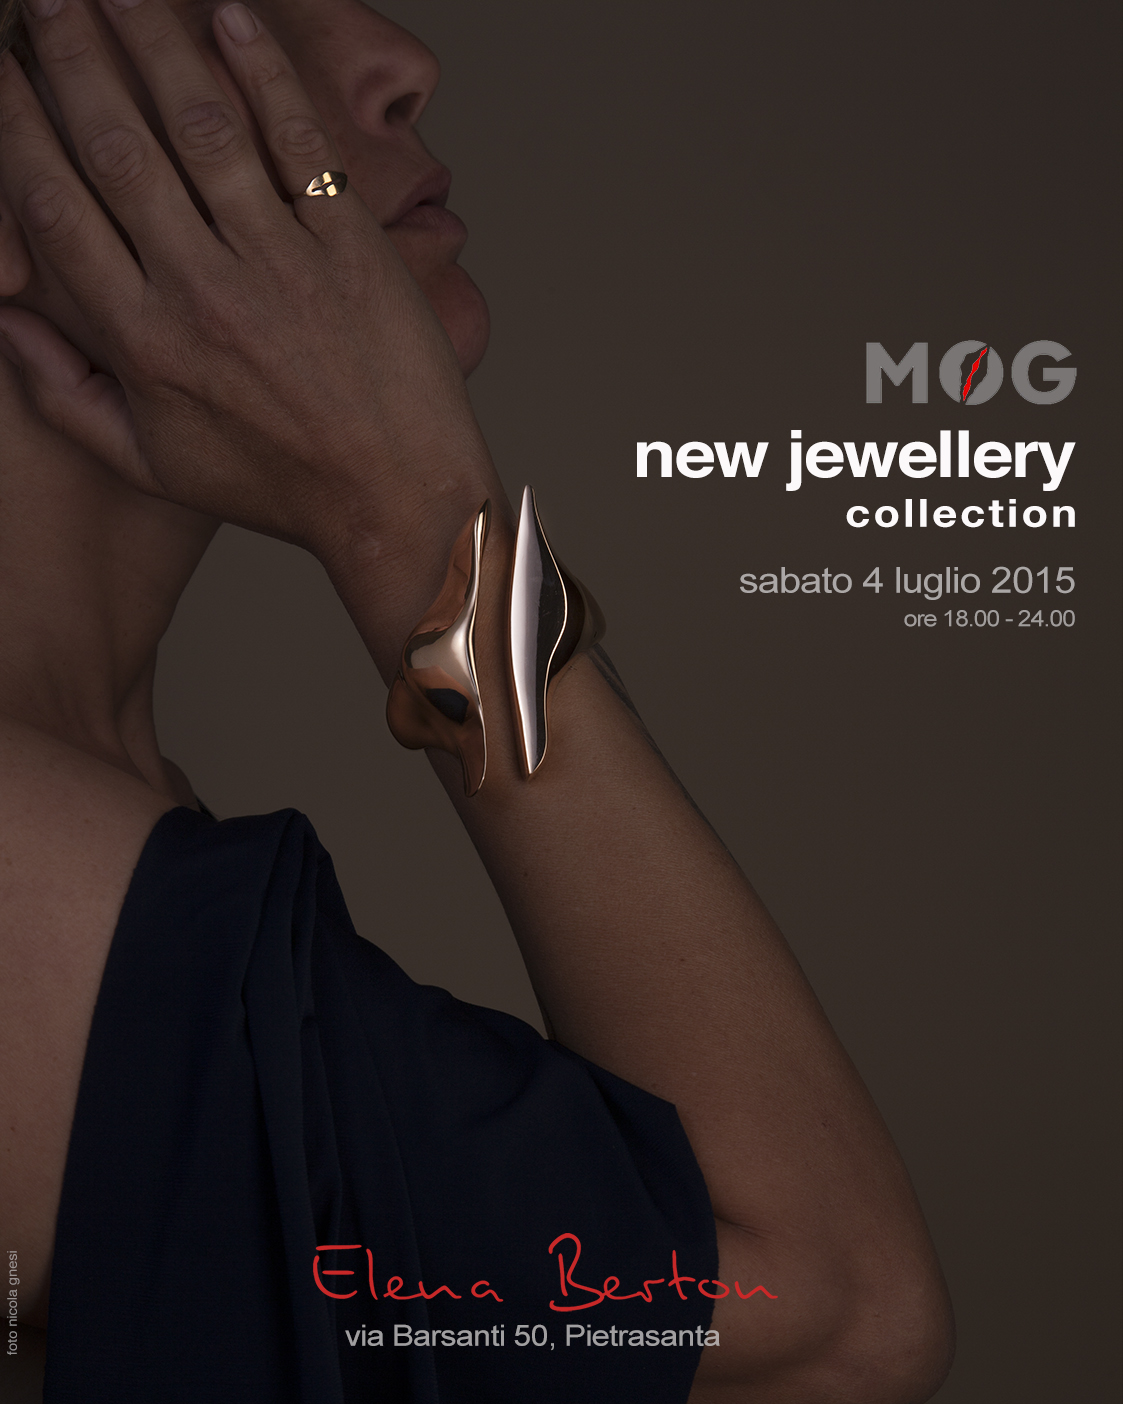 MOG new jewellery collection